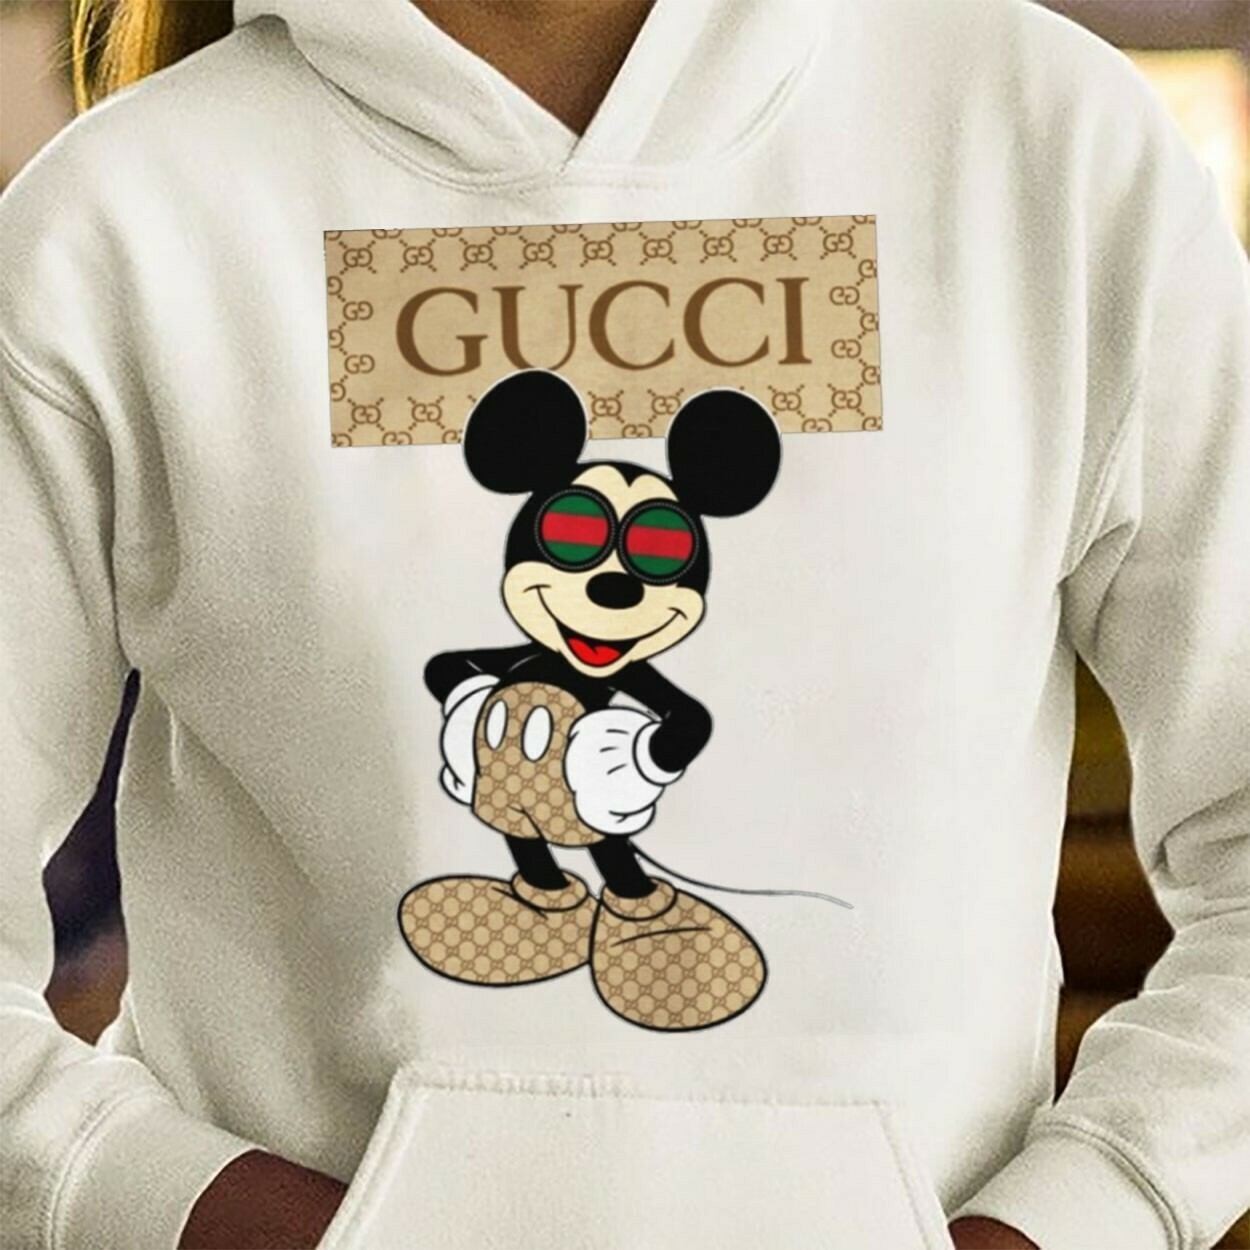 Logo Gucci,Gucci Shirt,Gucci T-shirt,Gucci Logo,Gucci Fashion shirt,Fashion shirt,Gucci Design shirt,Snake Gucci vintage shirt Long Sleeve Sweatshirt Hoodie Jolly Family Gifts